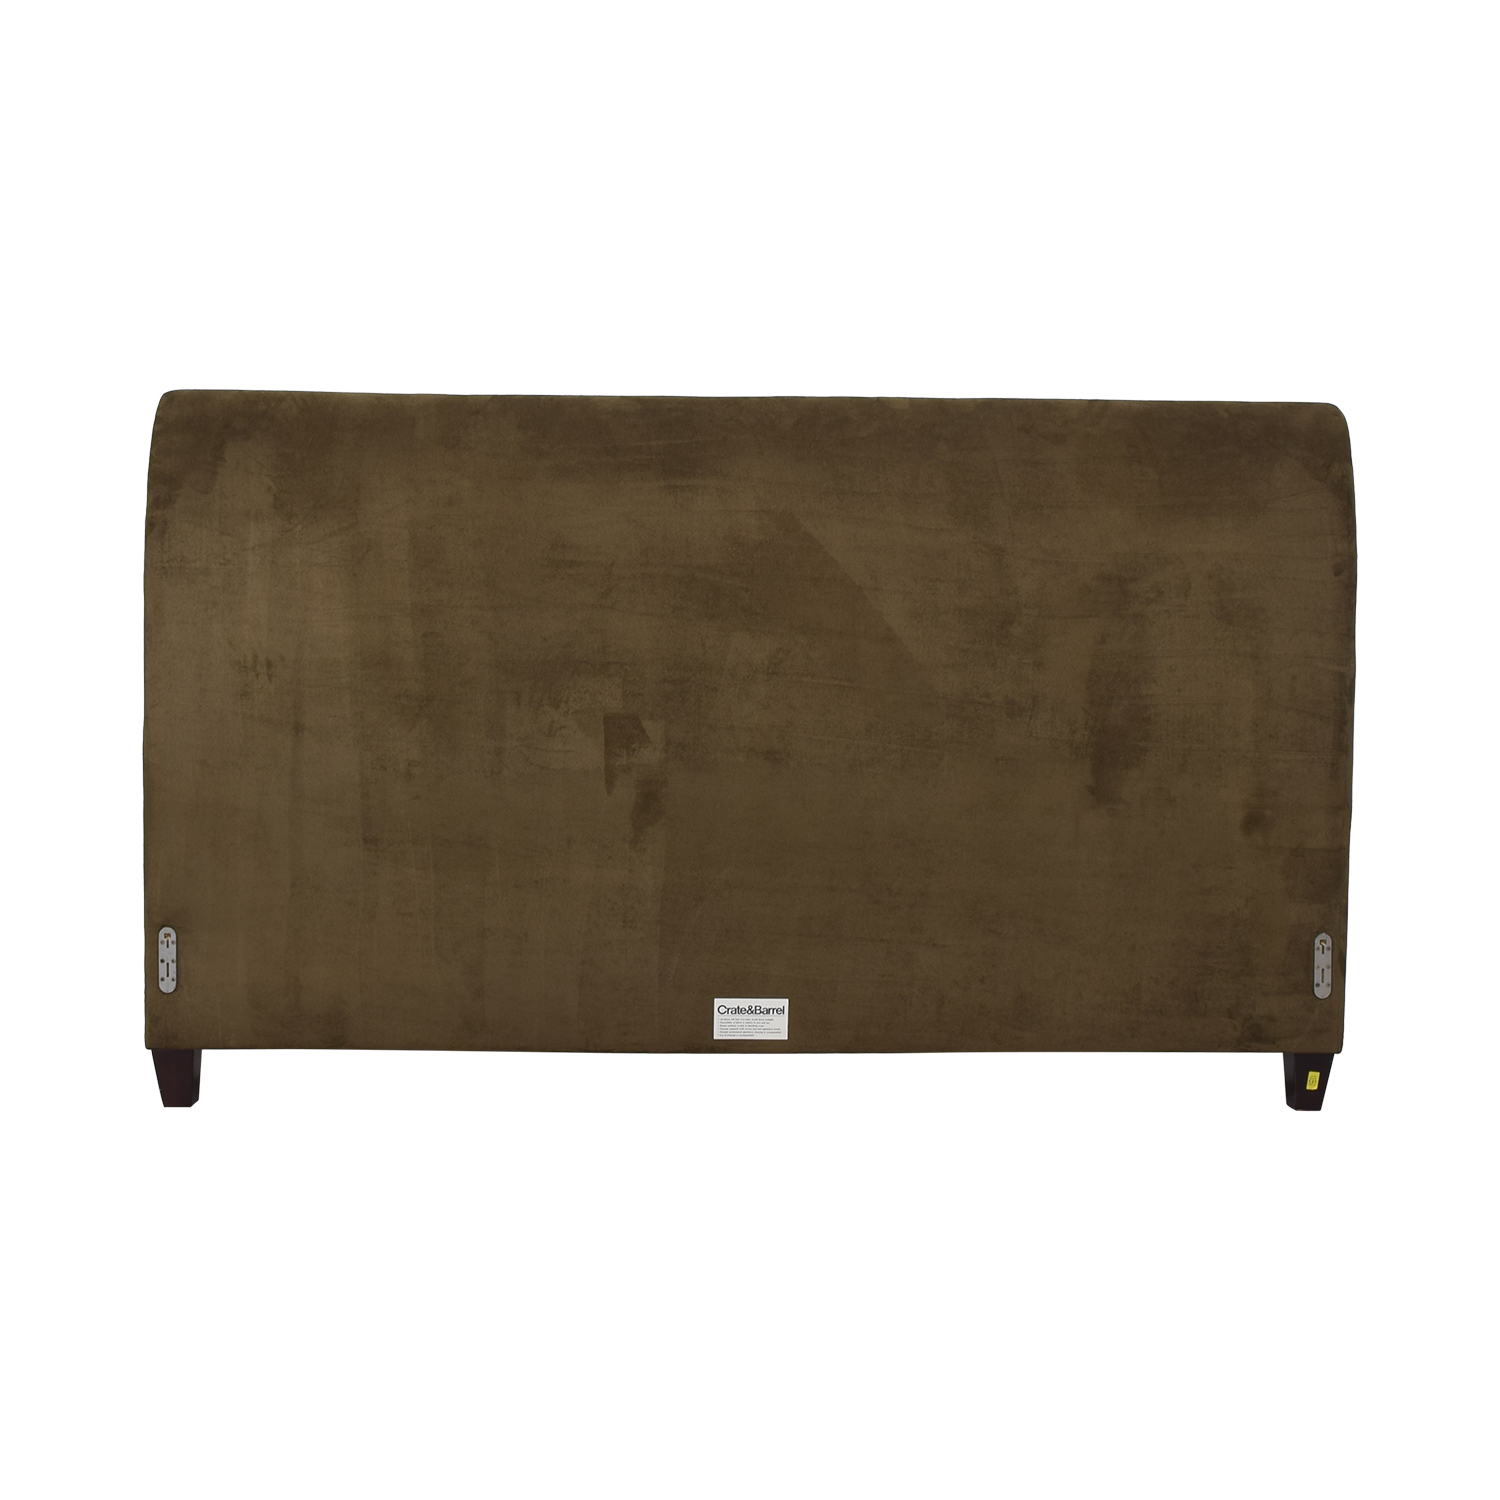 Crate & Barrel by Mitchell Gold + Bob WIlliams Ultrasuede King Fairmont Headboard / Headboards